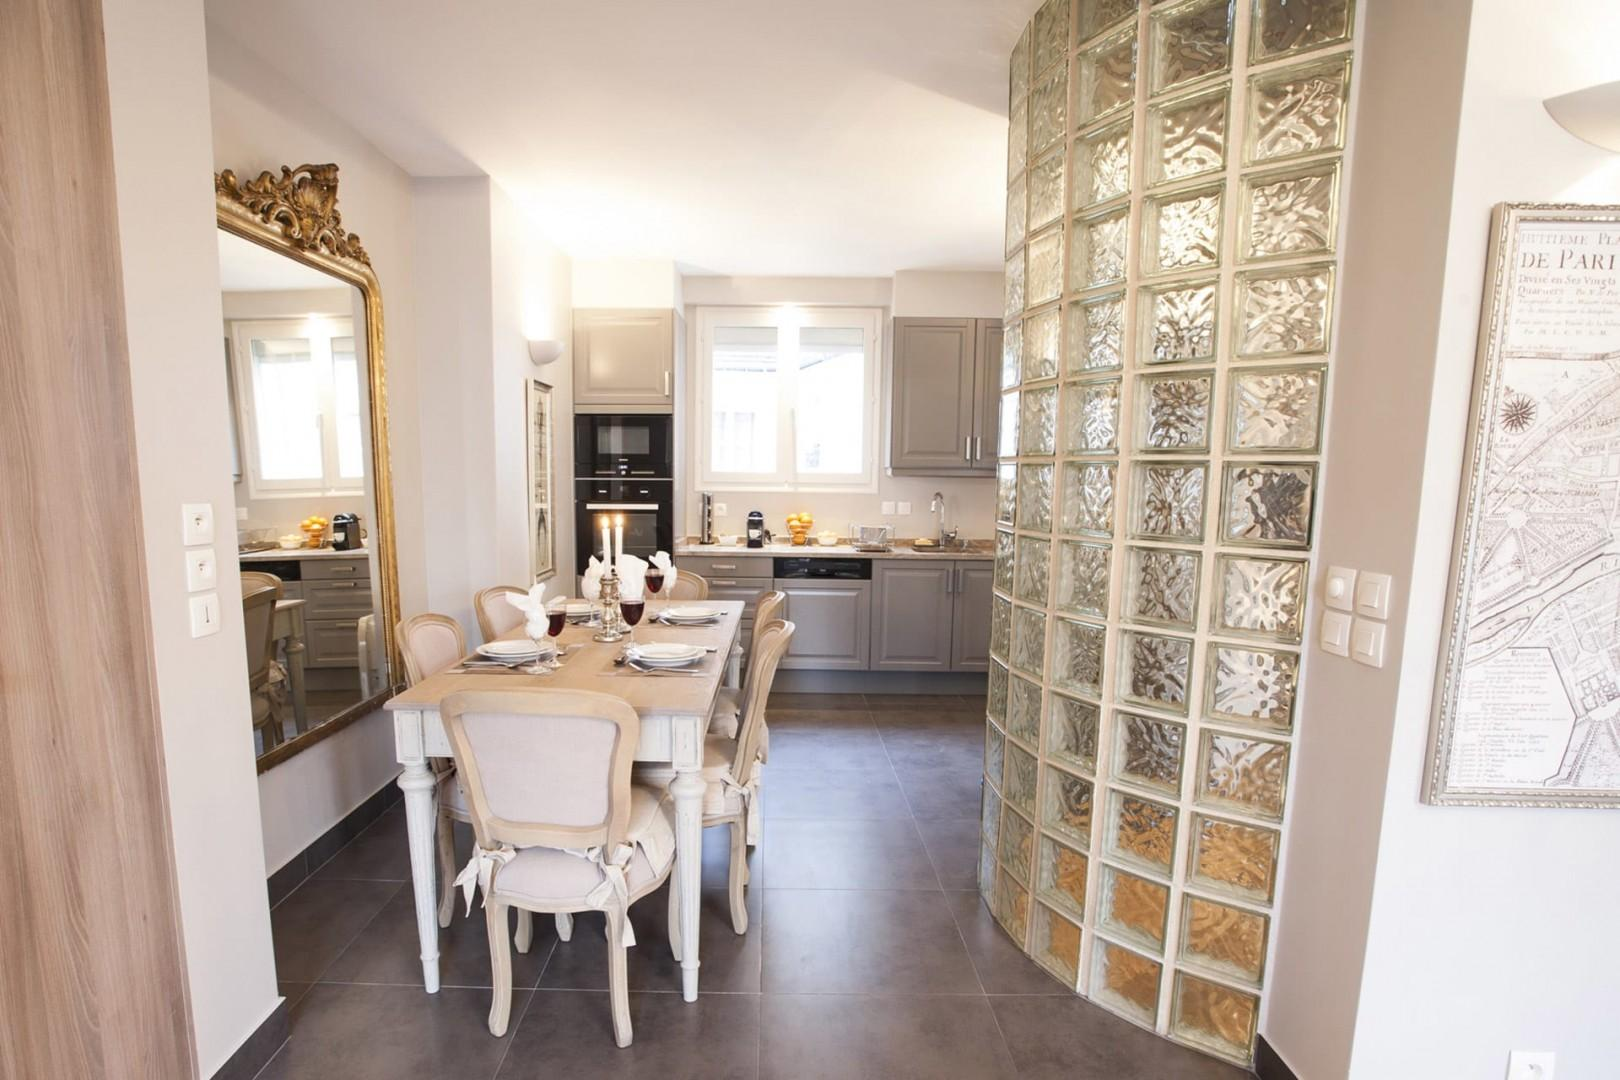 View from the dining area towards the kitchen